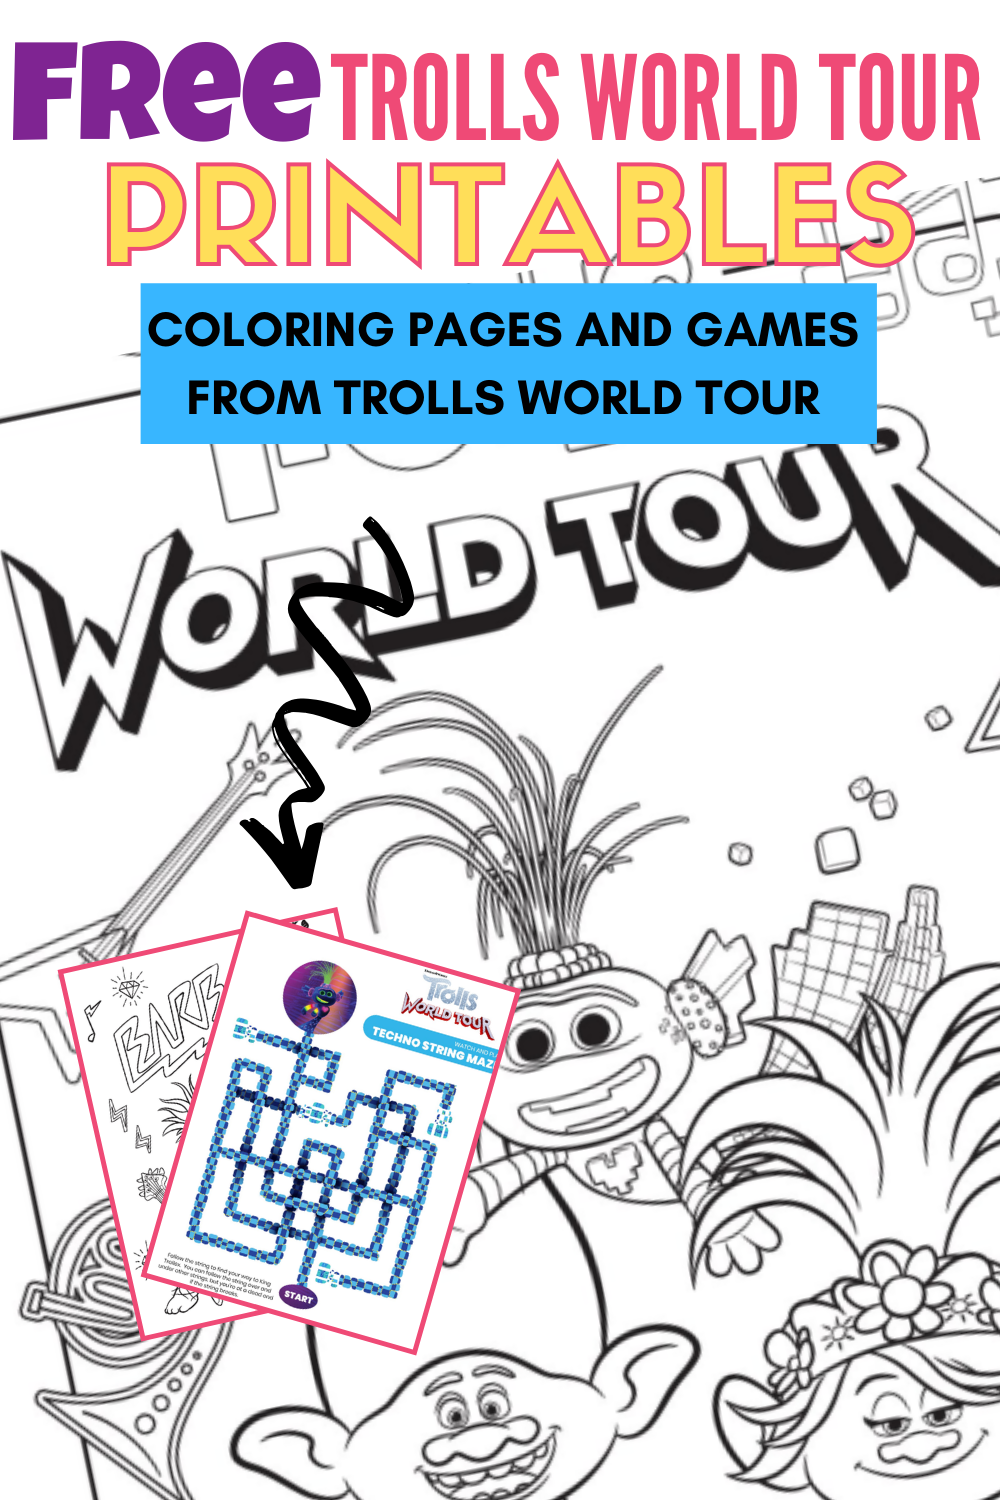 Free Trolls World Tour Coloring Pages And Printable Activities In 2020 Coloring Pages Coloring Pages For Kids Printable Activities